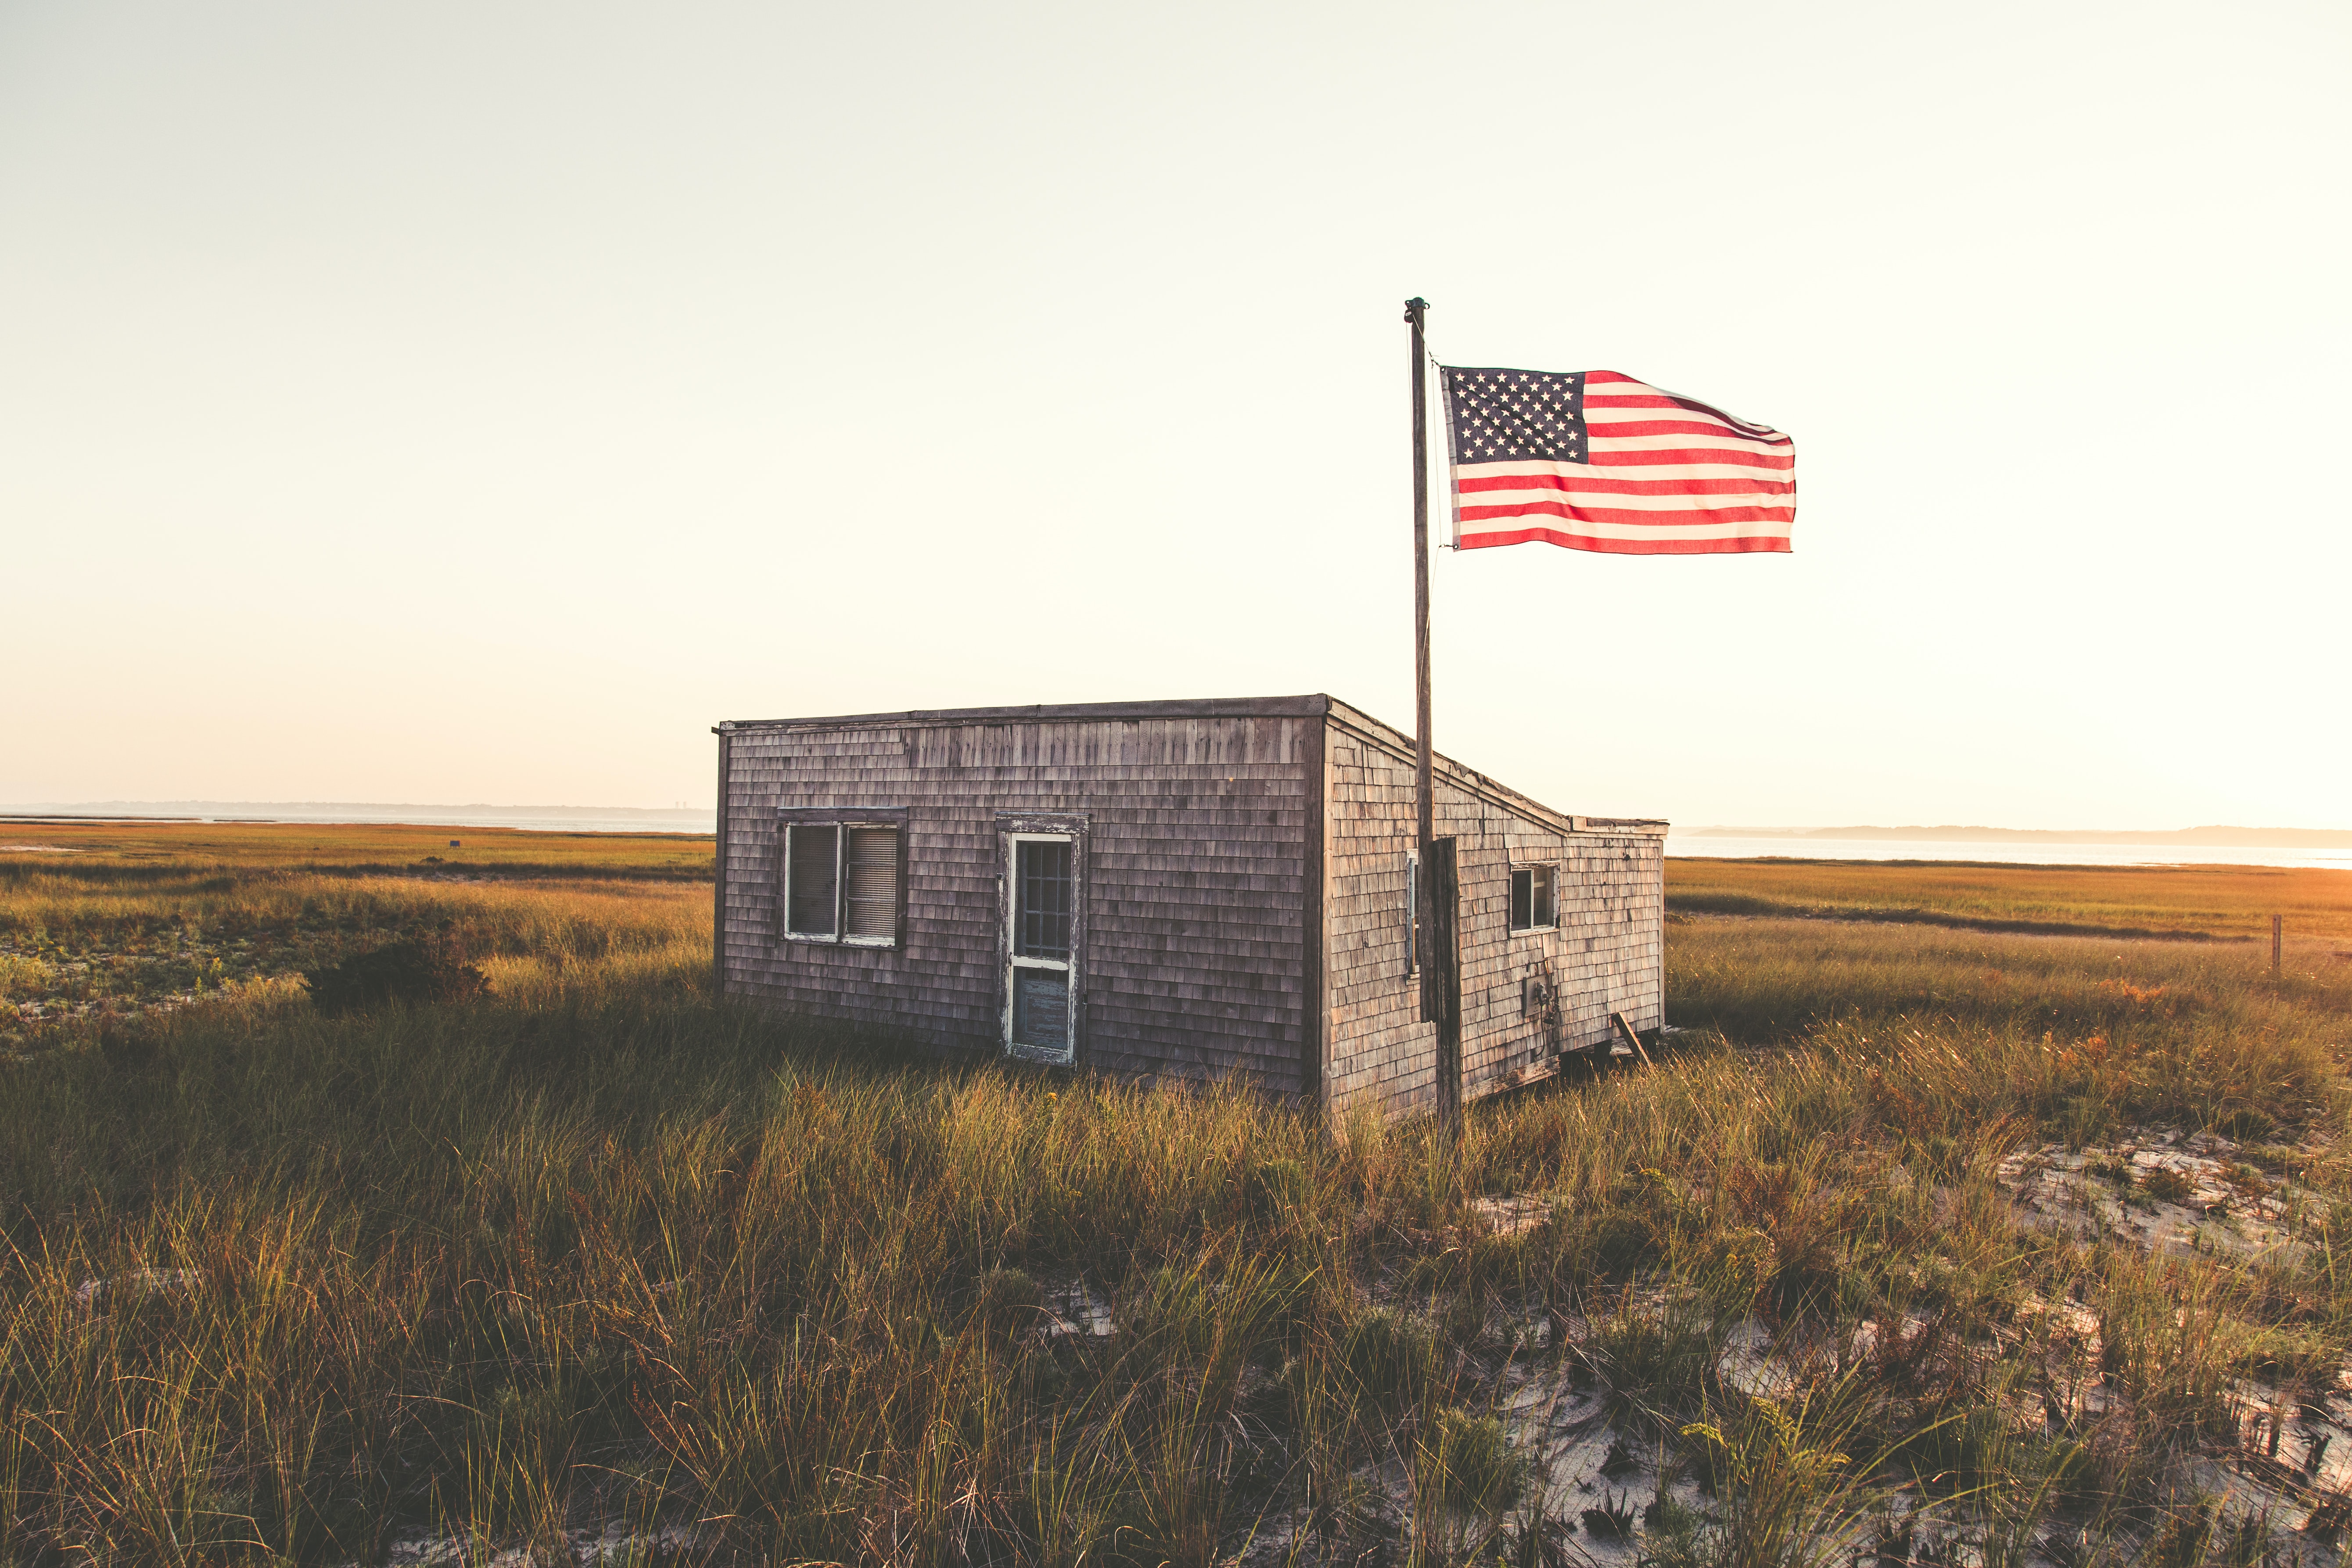 Small building with an American flag at Chatham beach